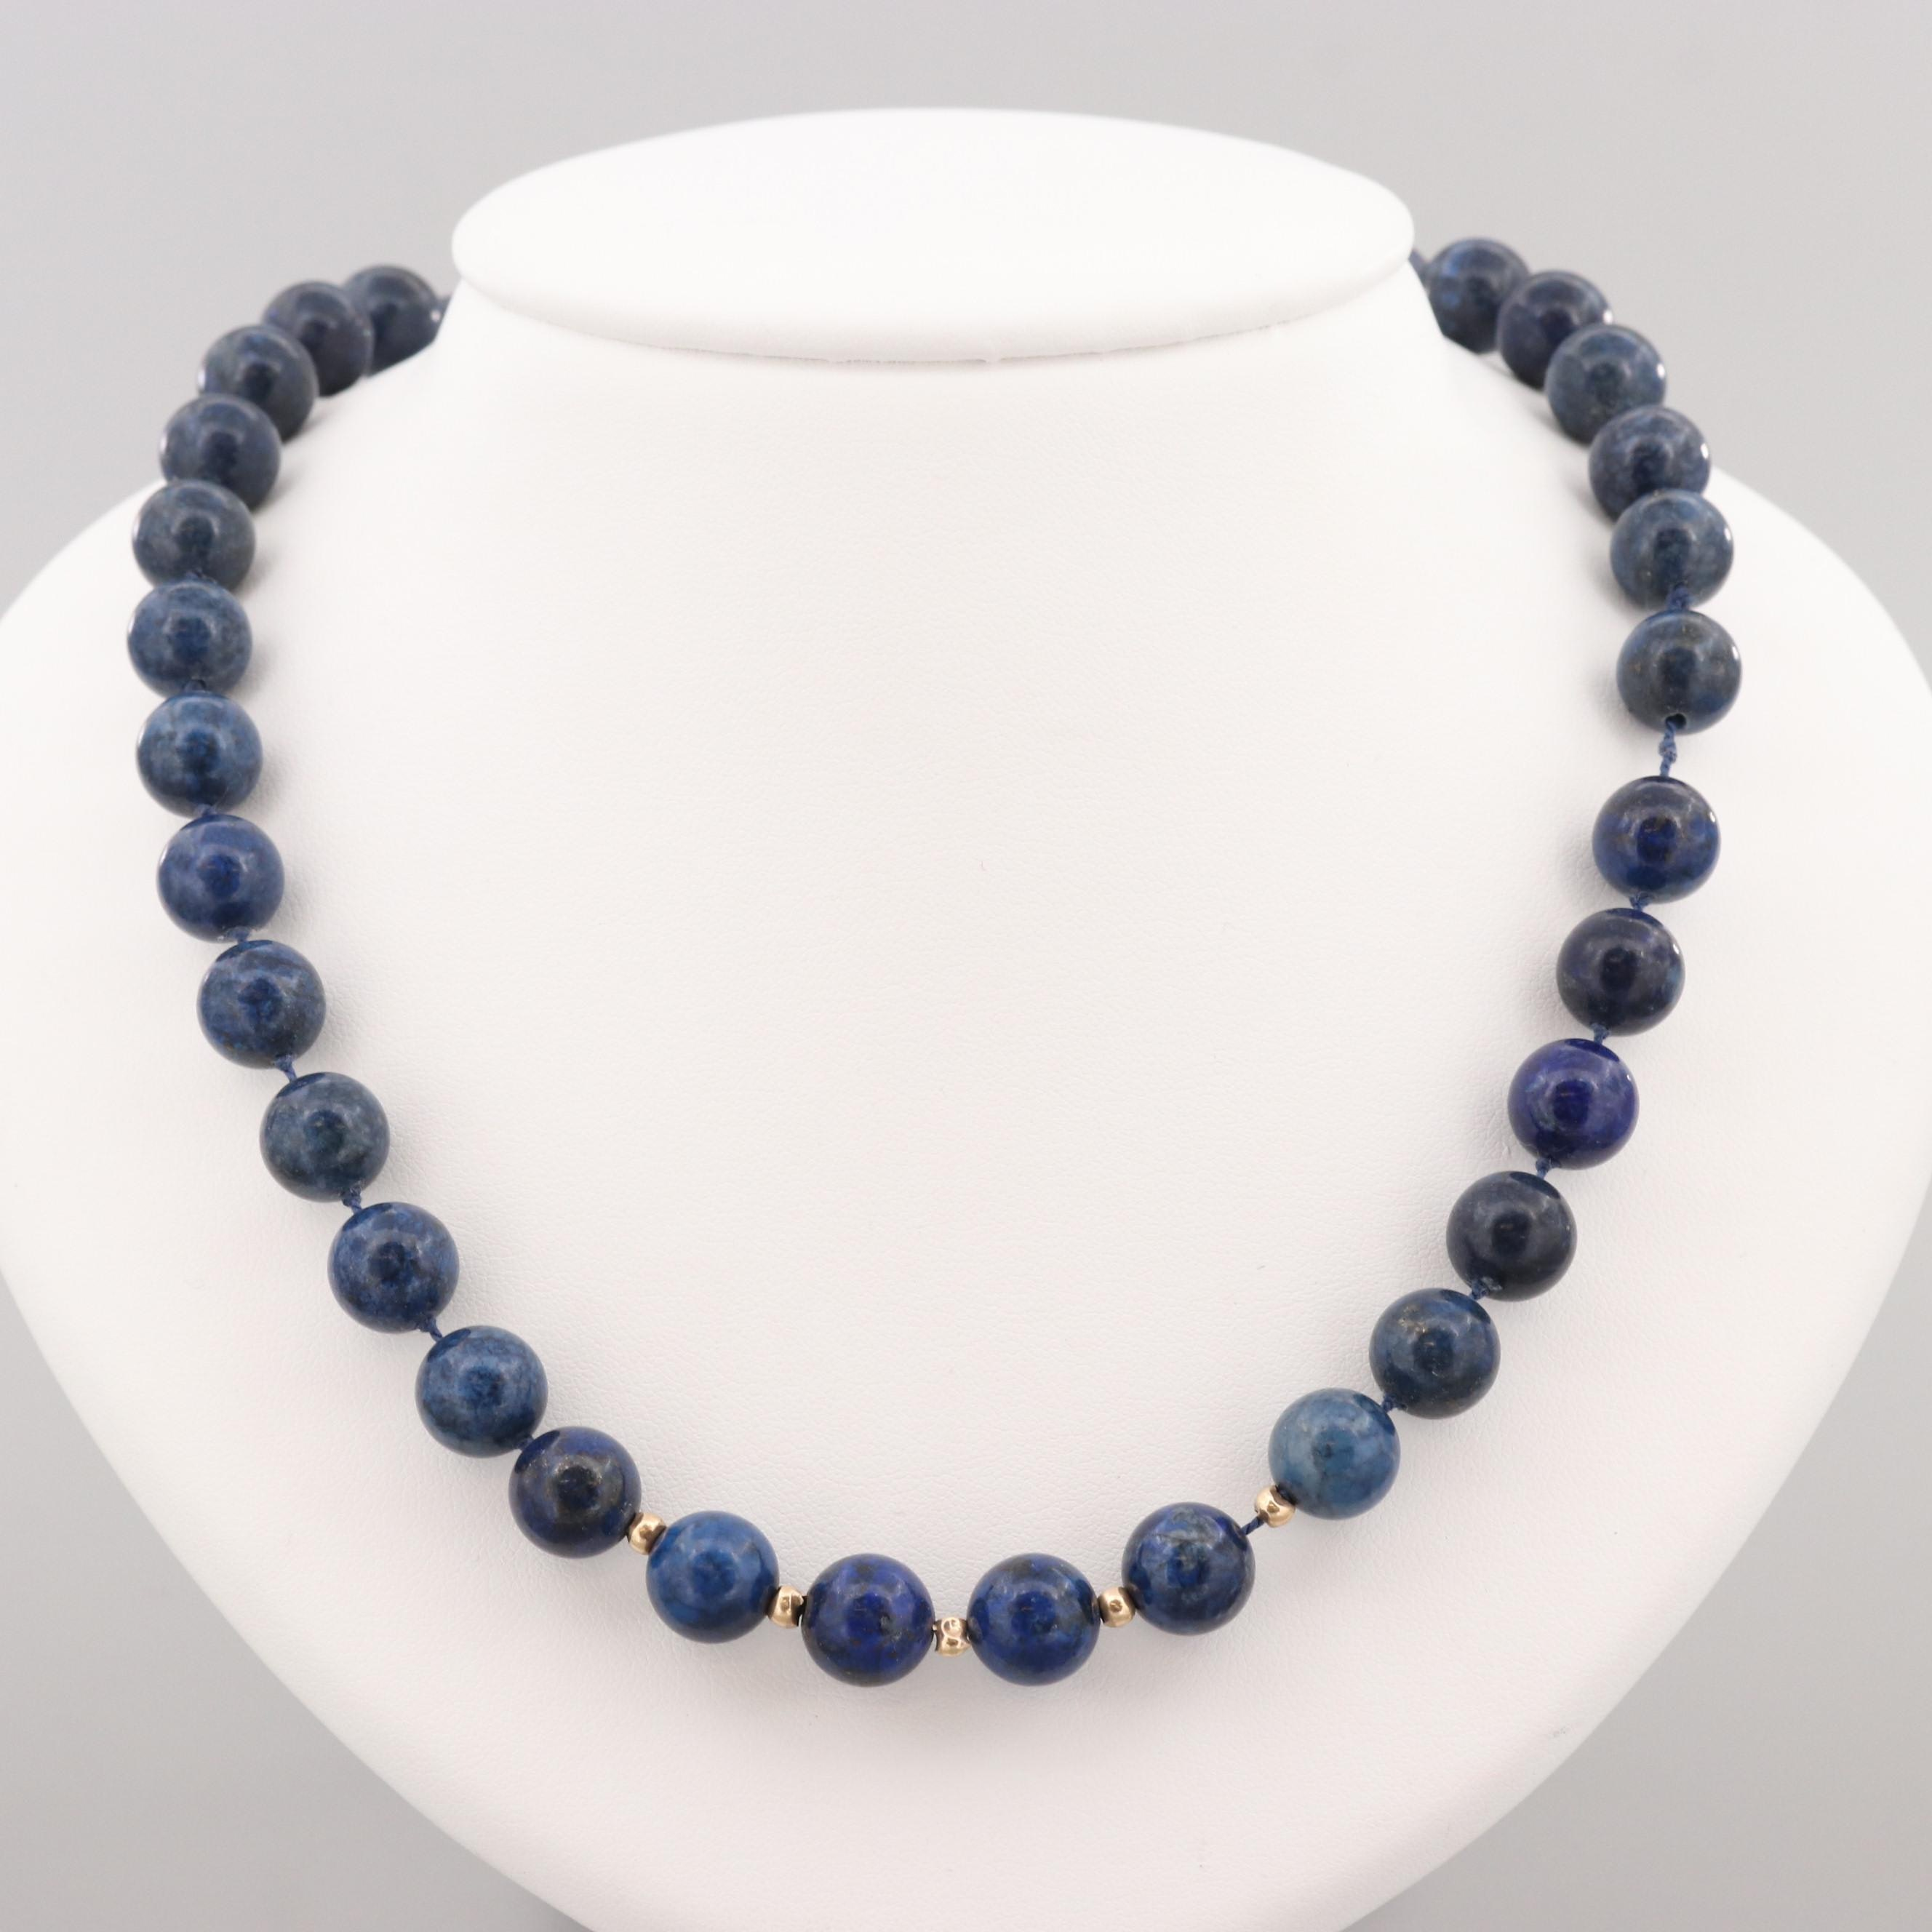 Lapis Lazuli Beaded Necklace with 14K Yellow Gold Clasp and Spacers